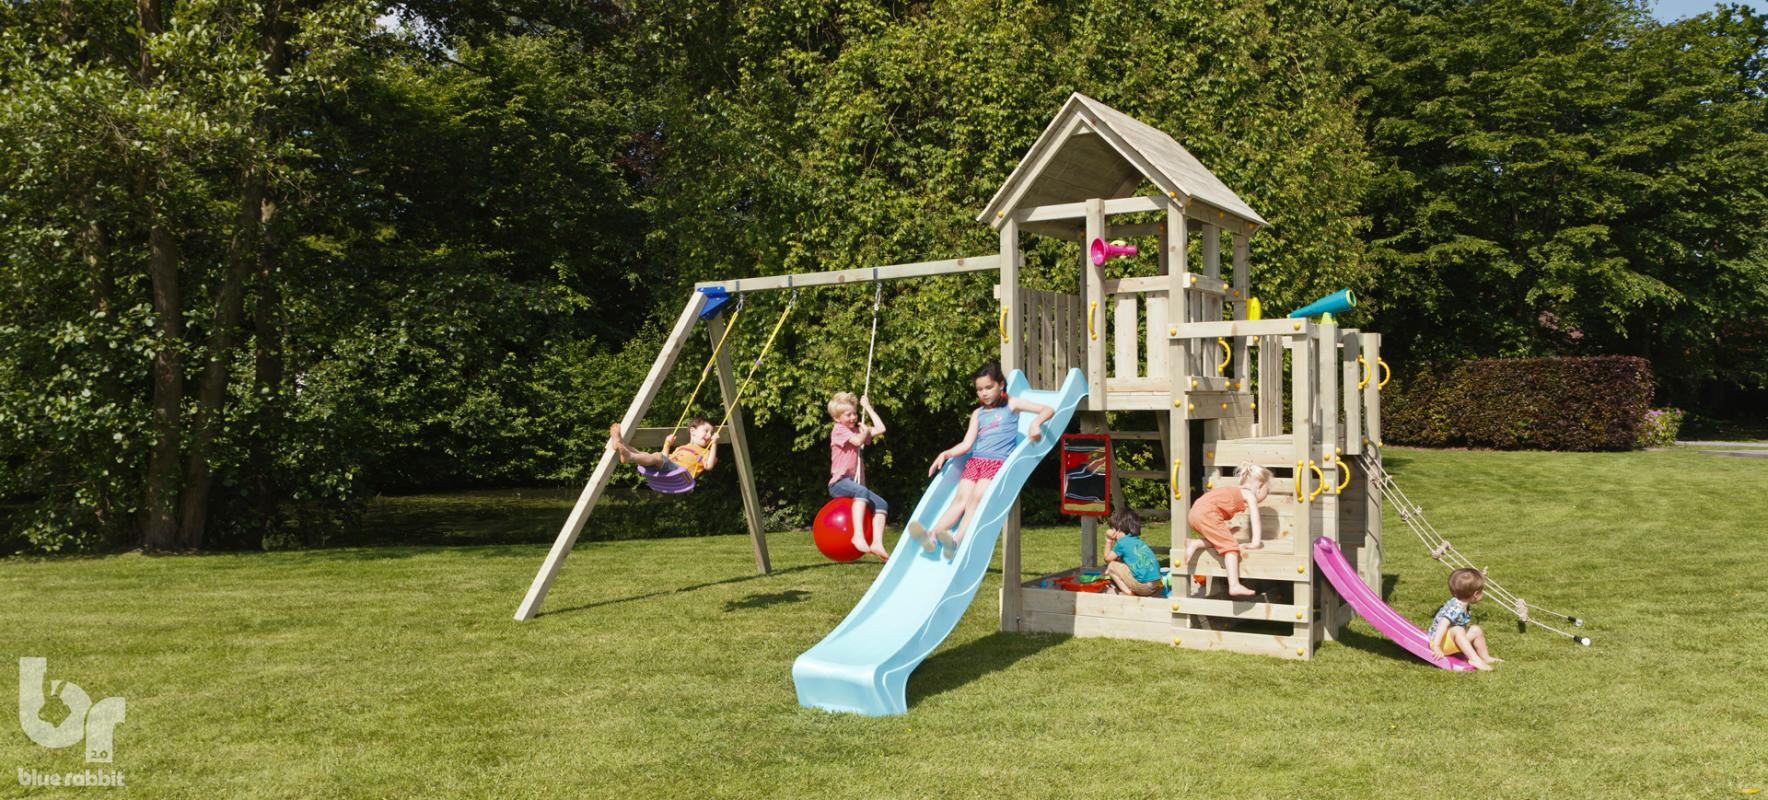 wooden blue rabbit playtower penthouse with girl on turquoise blue slide and addon swing